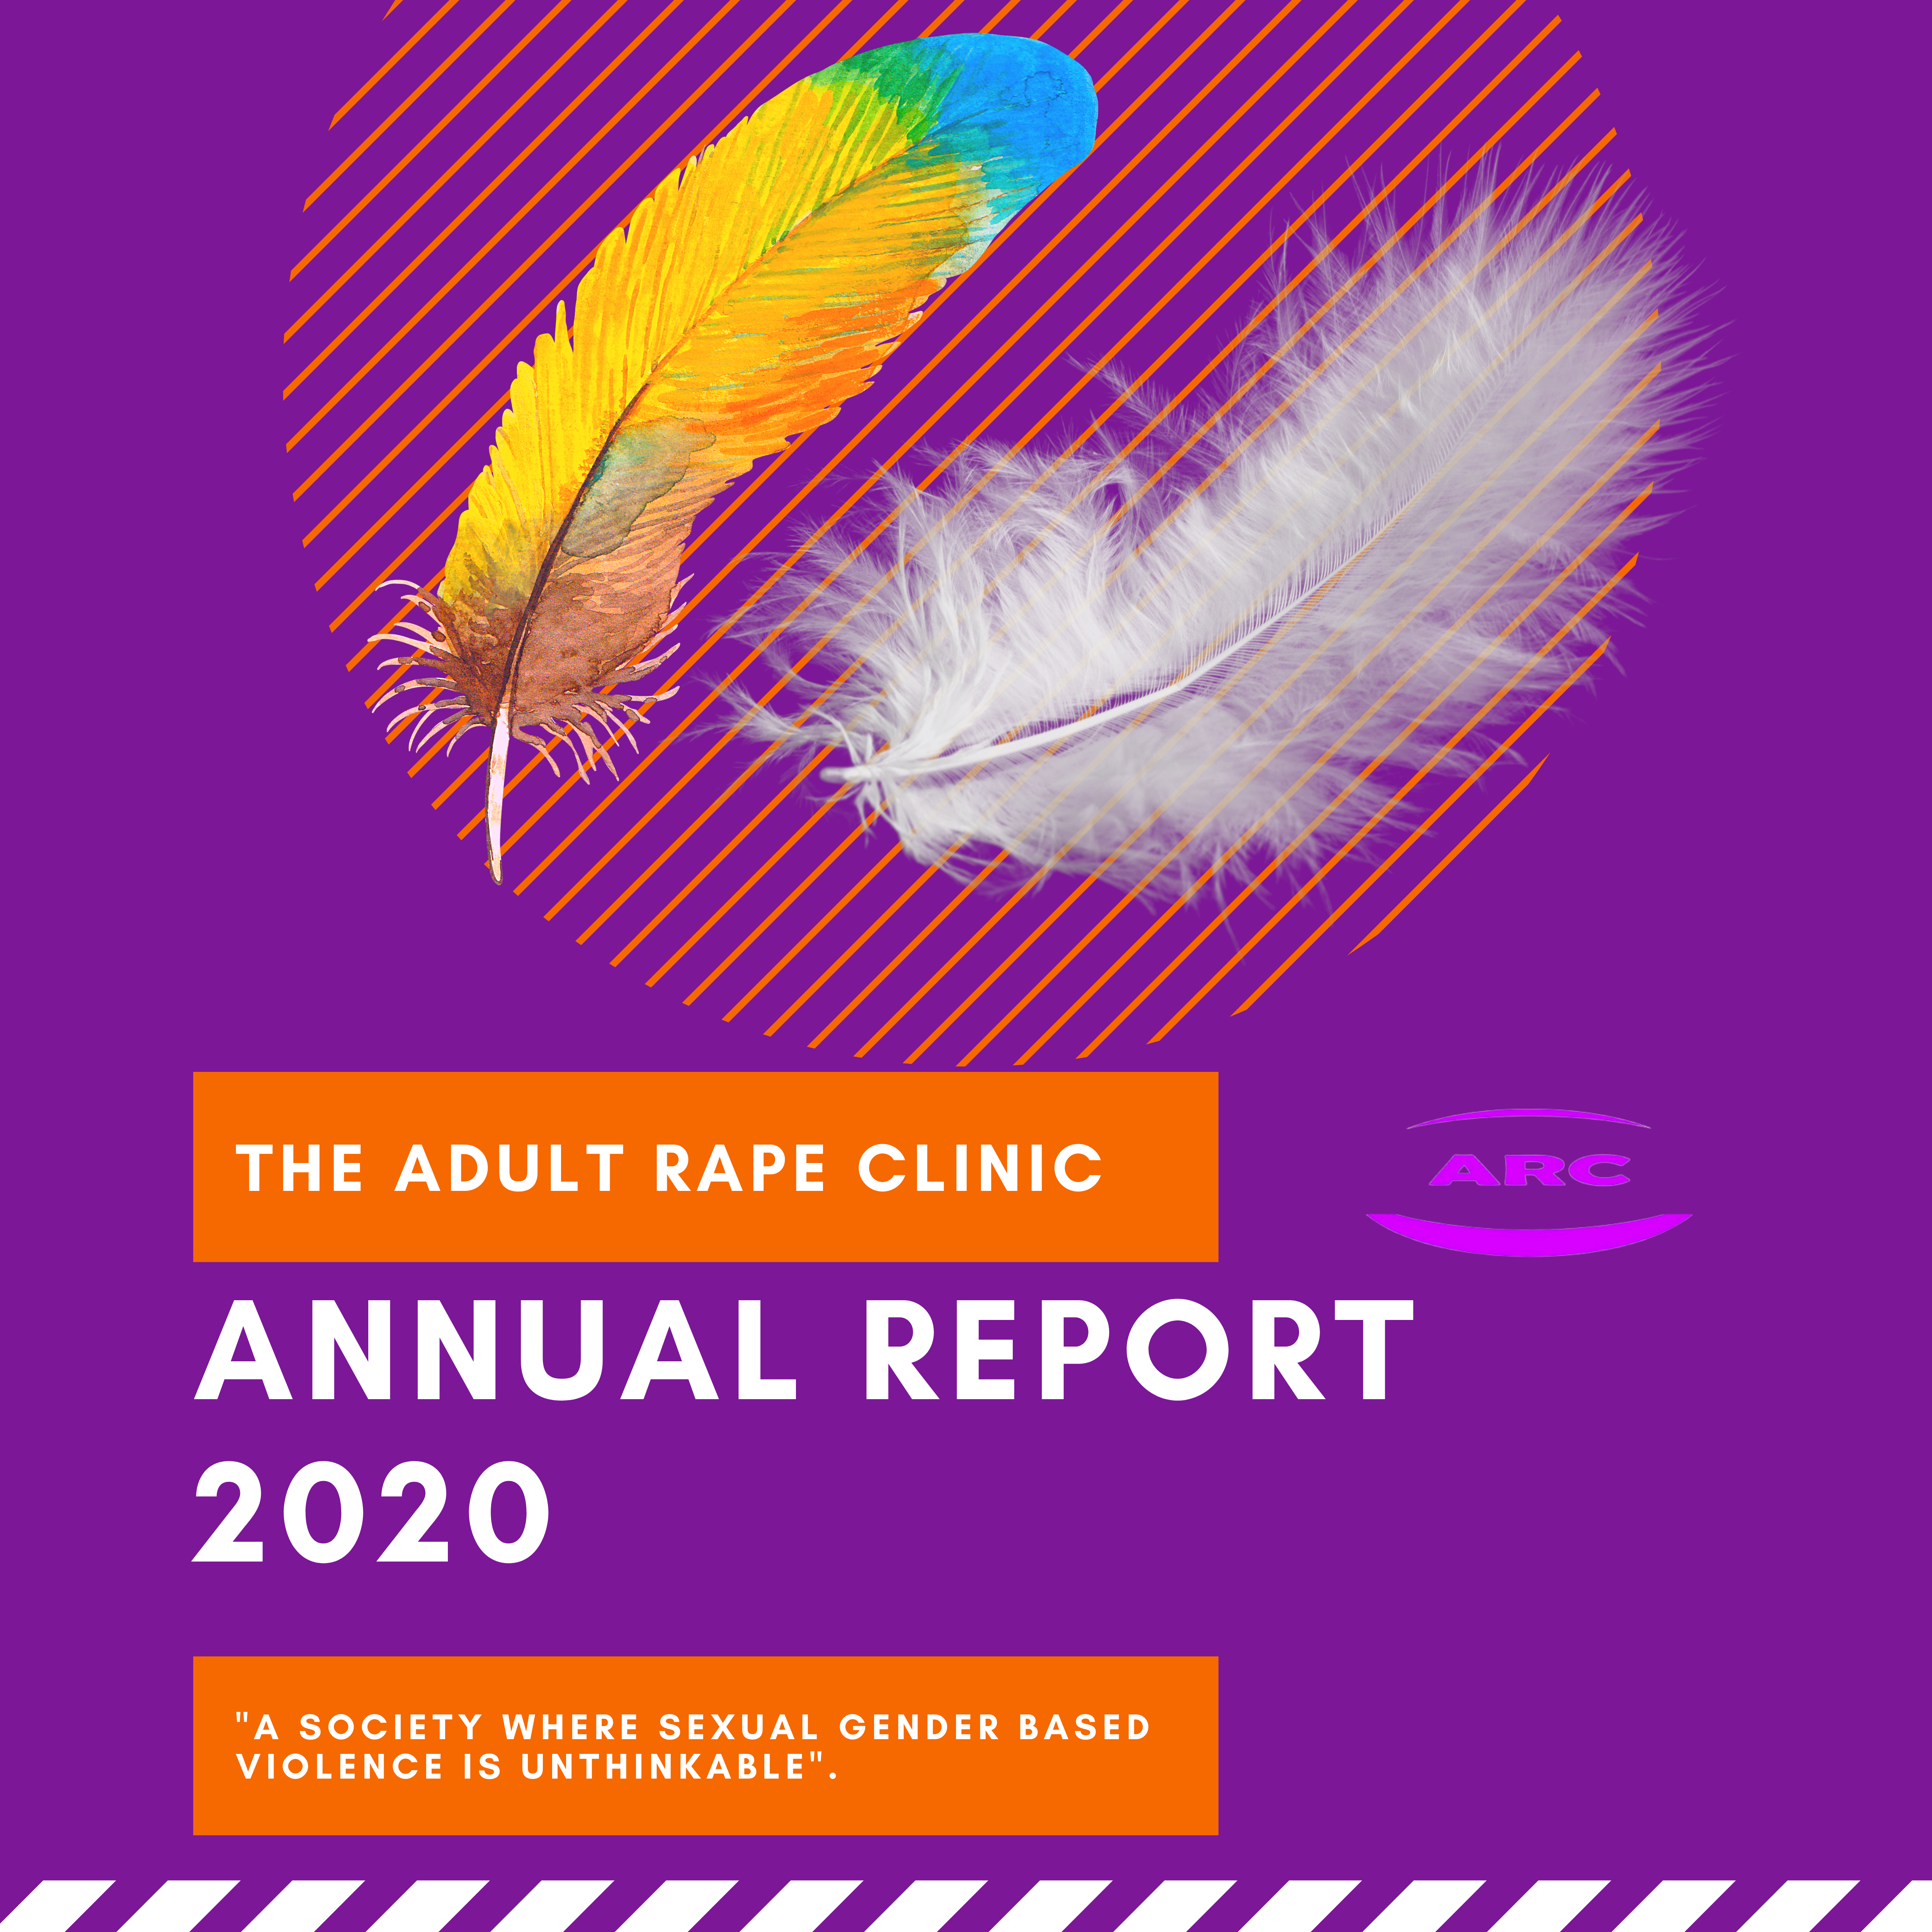 http://www.adultrapeclinic.org.zw/wp-content/uploads/2021/08/Copy-of-ANNUAL-REPORT-2020.png